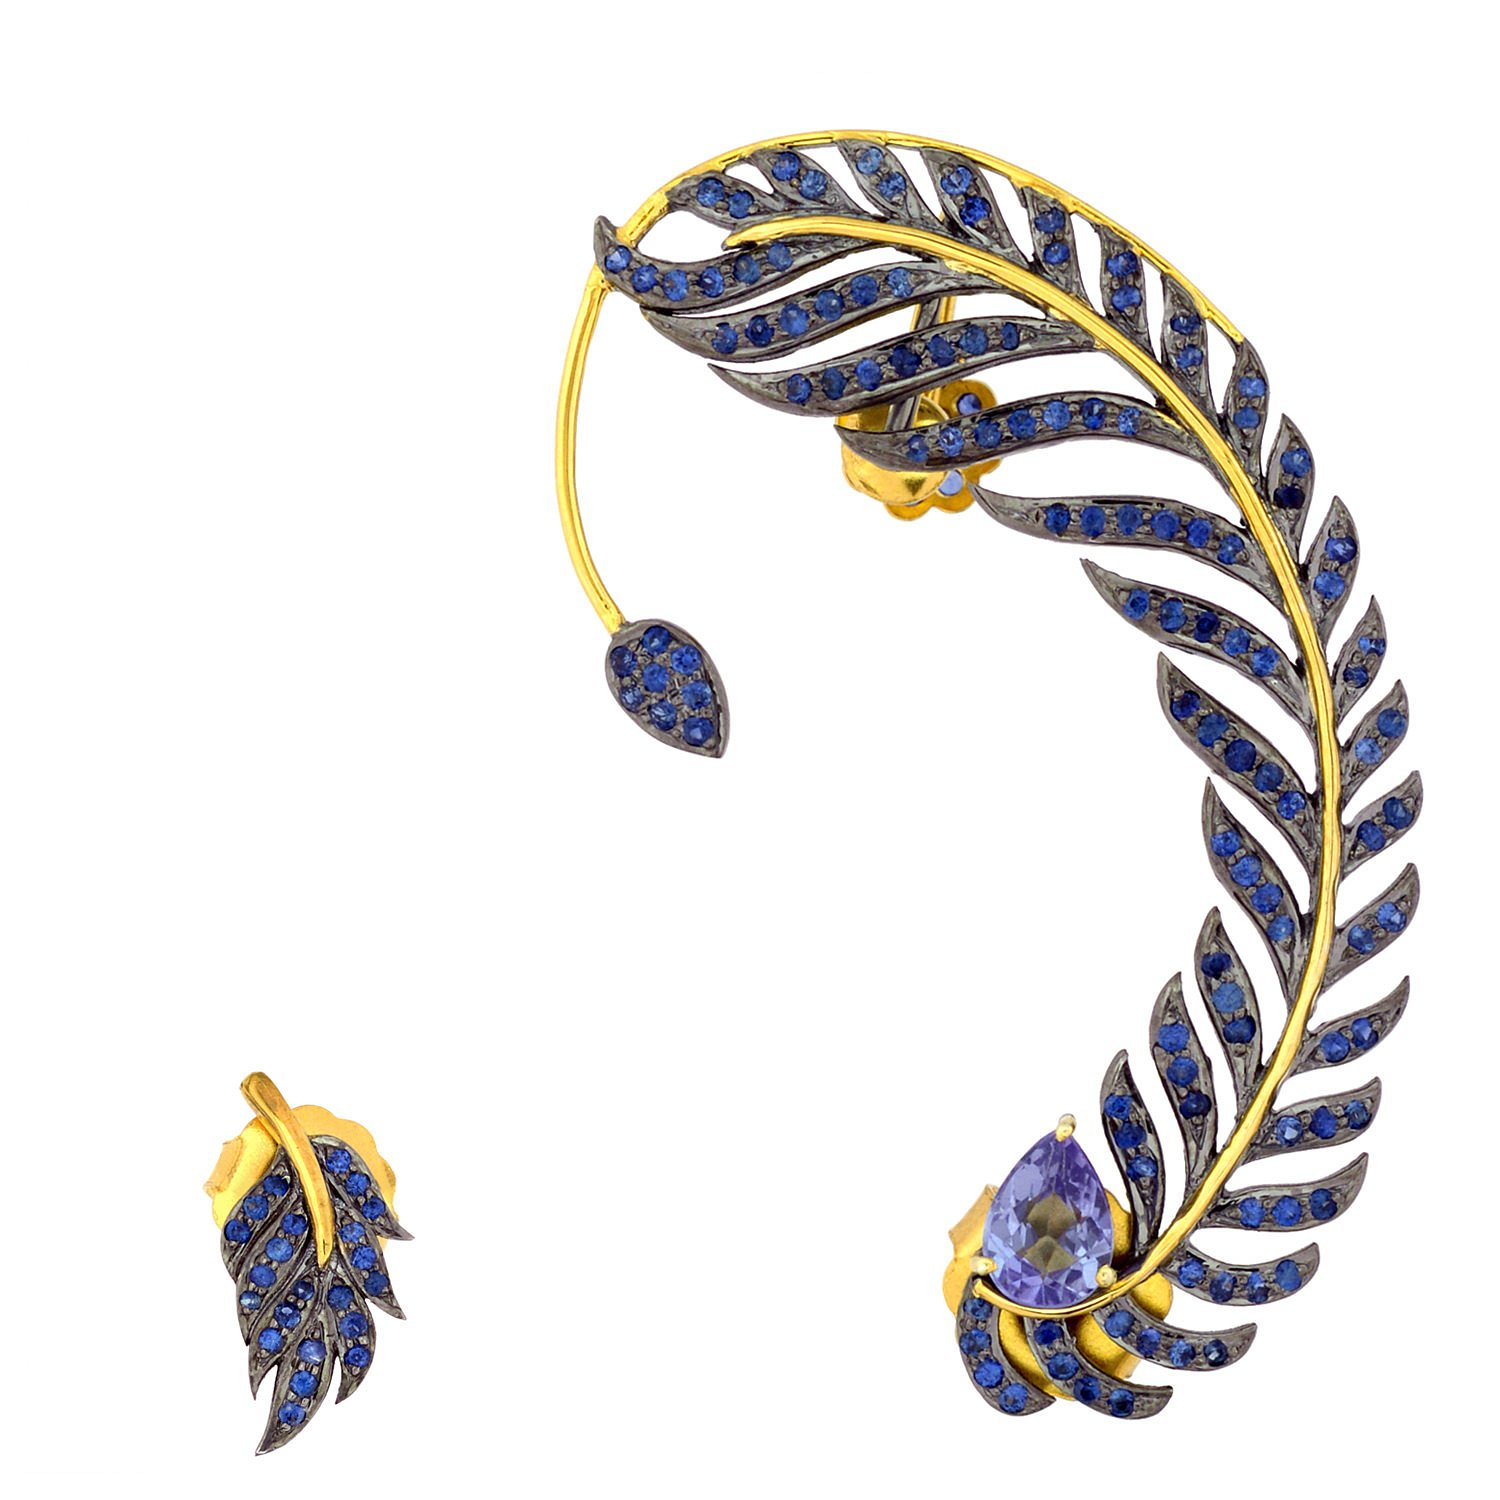 Blue Sapphire & Diamond Leaf Style Ear Crawler Cuff Climber Earrings in 18K Yellow Gold & Sterling Silver